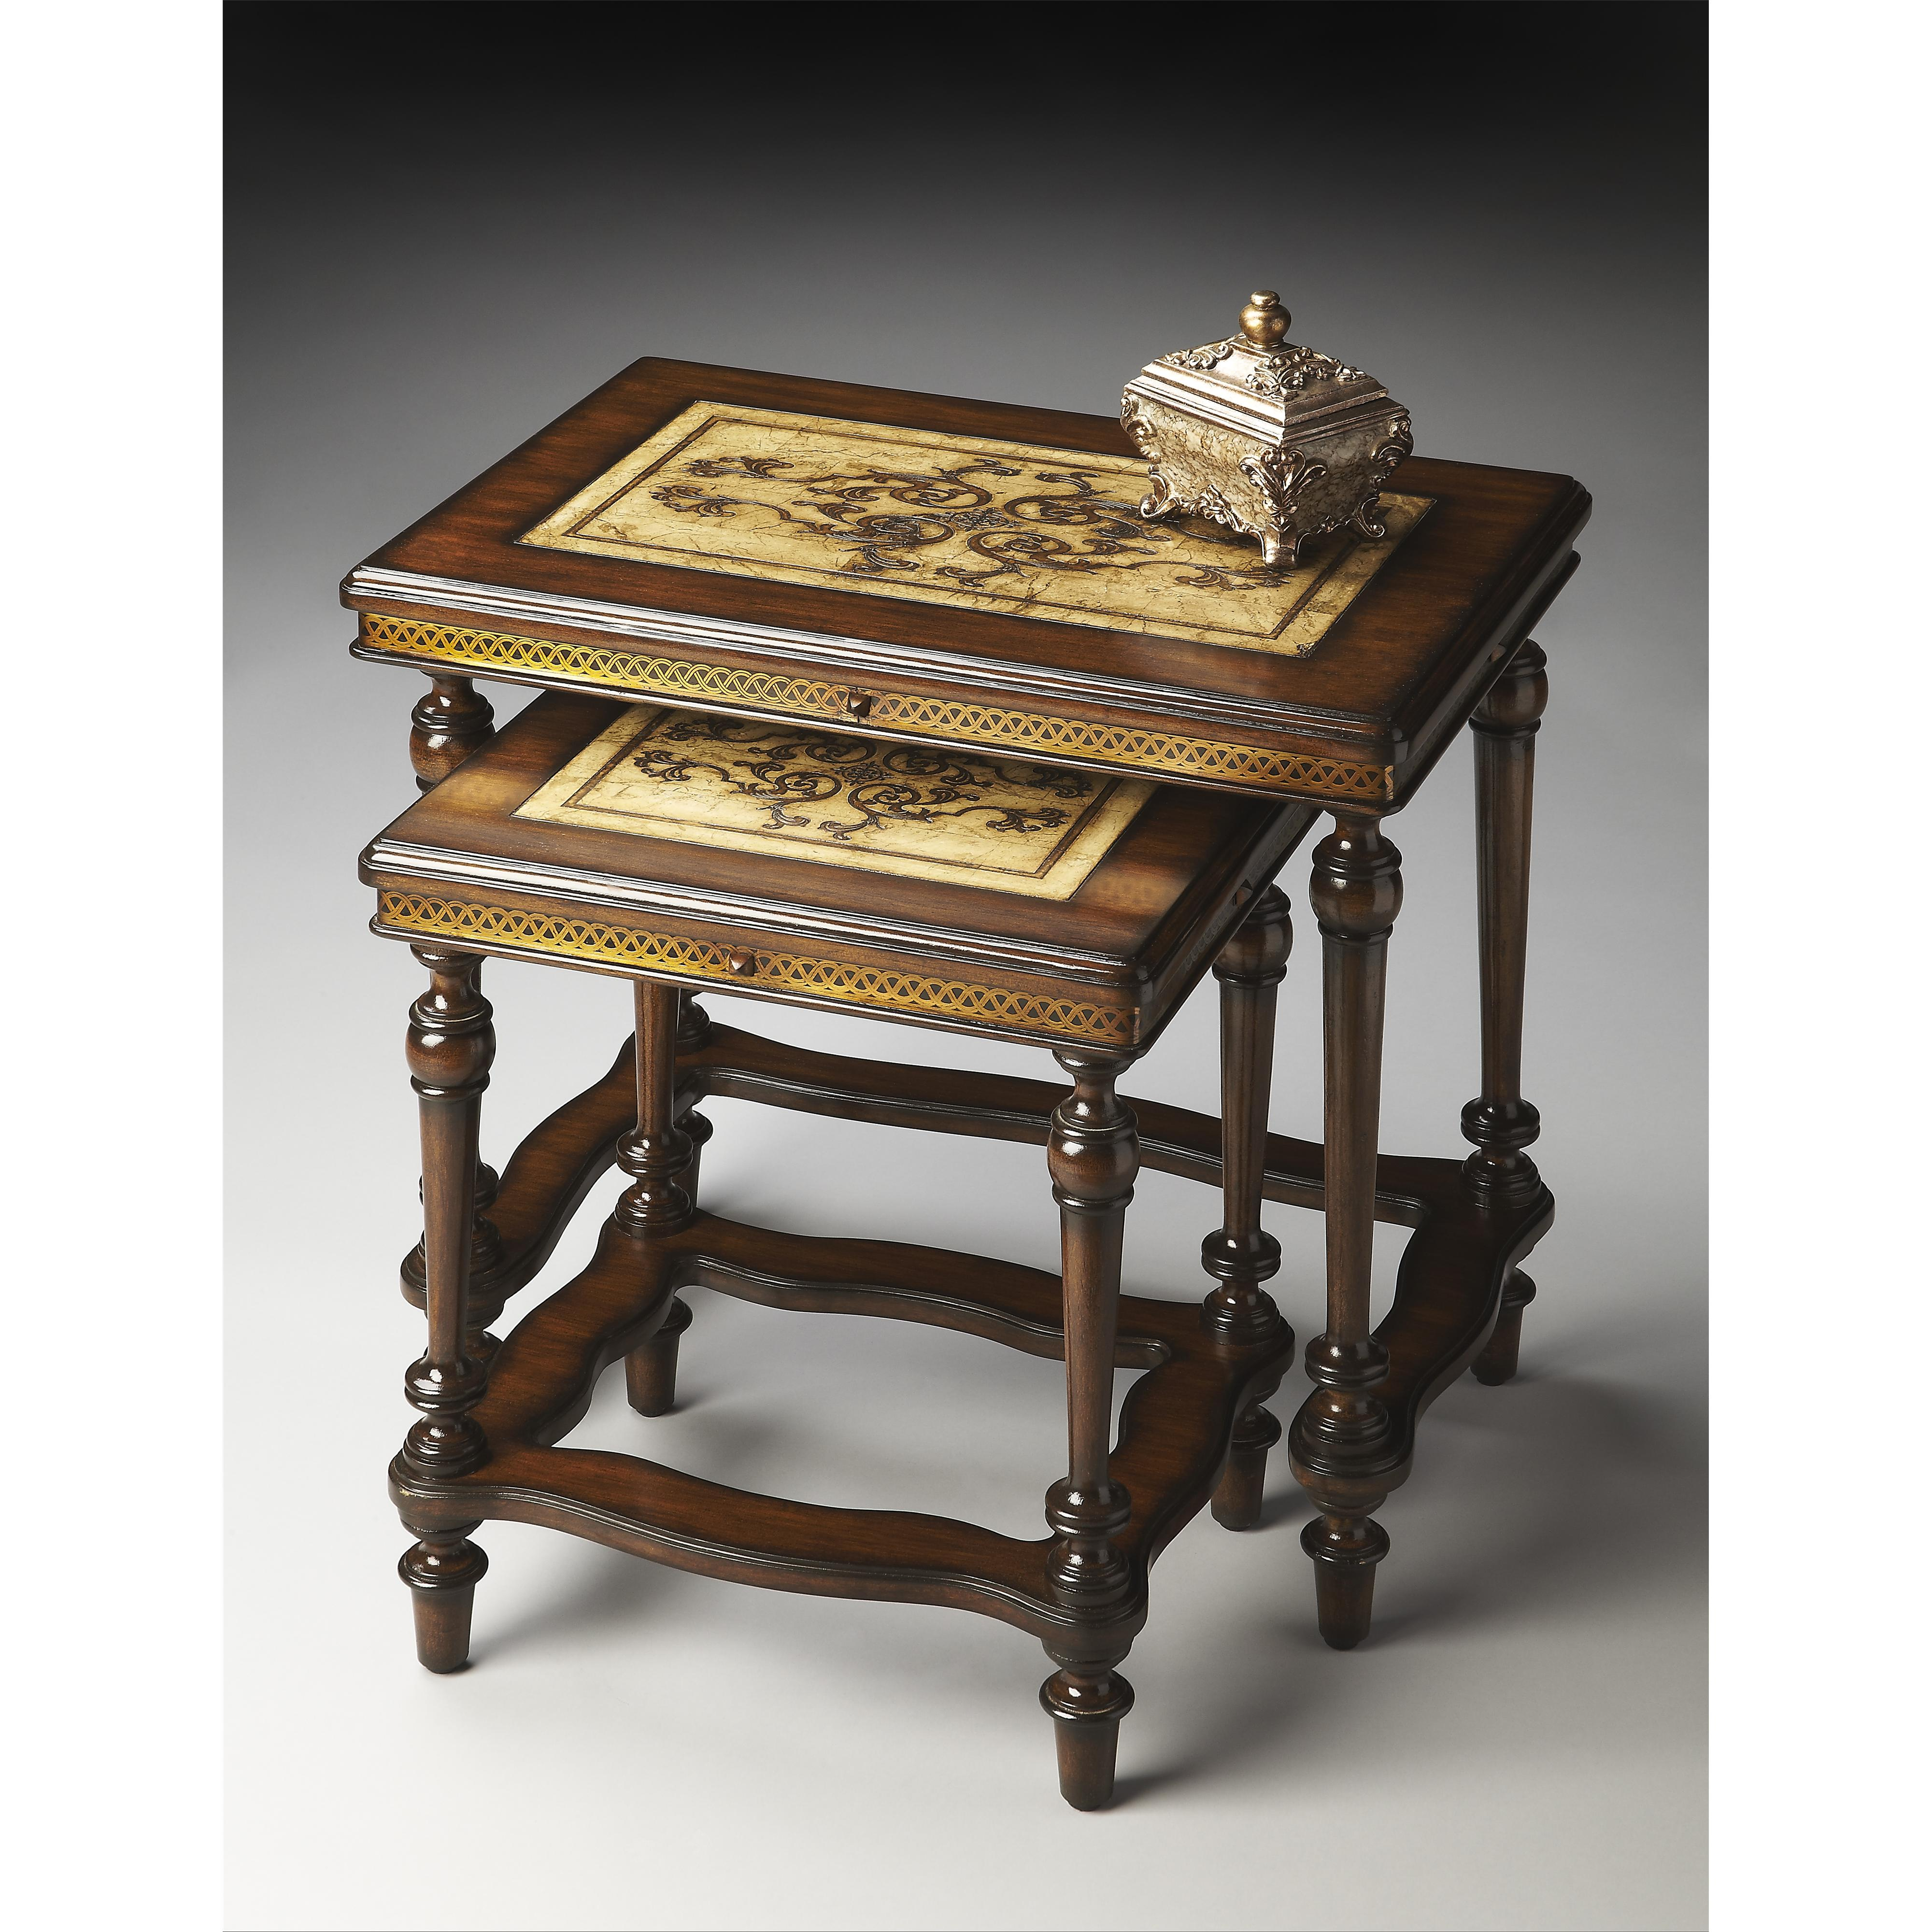 Butler Specialty Company Heritage Nesting Tables - Item Number: 2290070